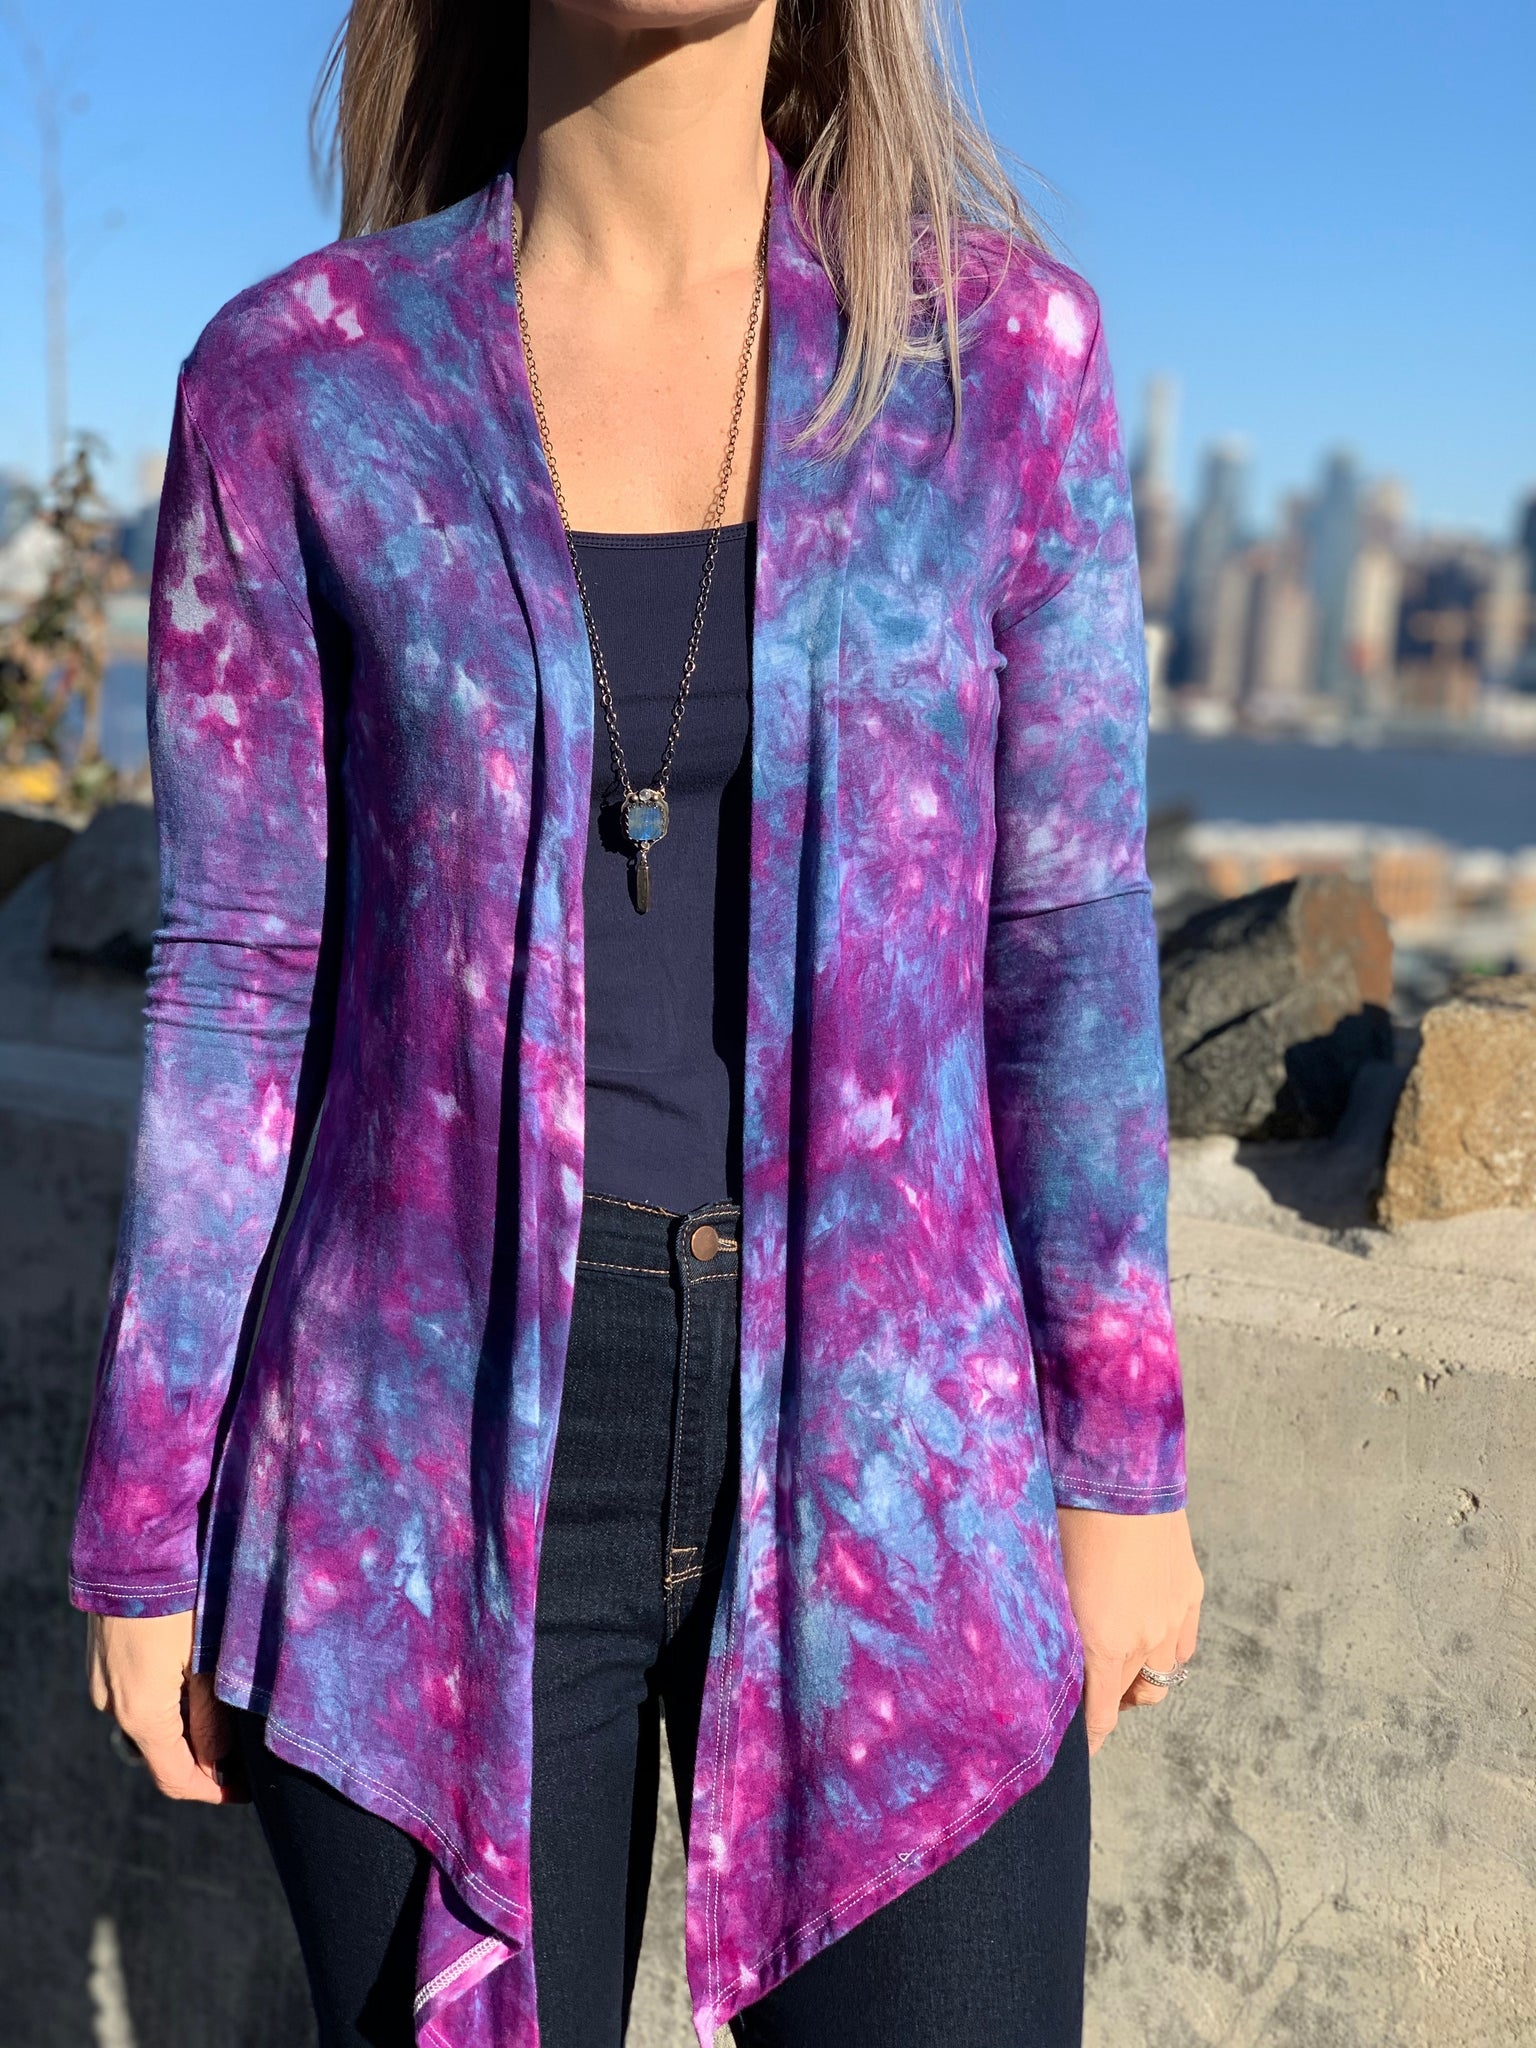 Milky Way cardigan